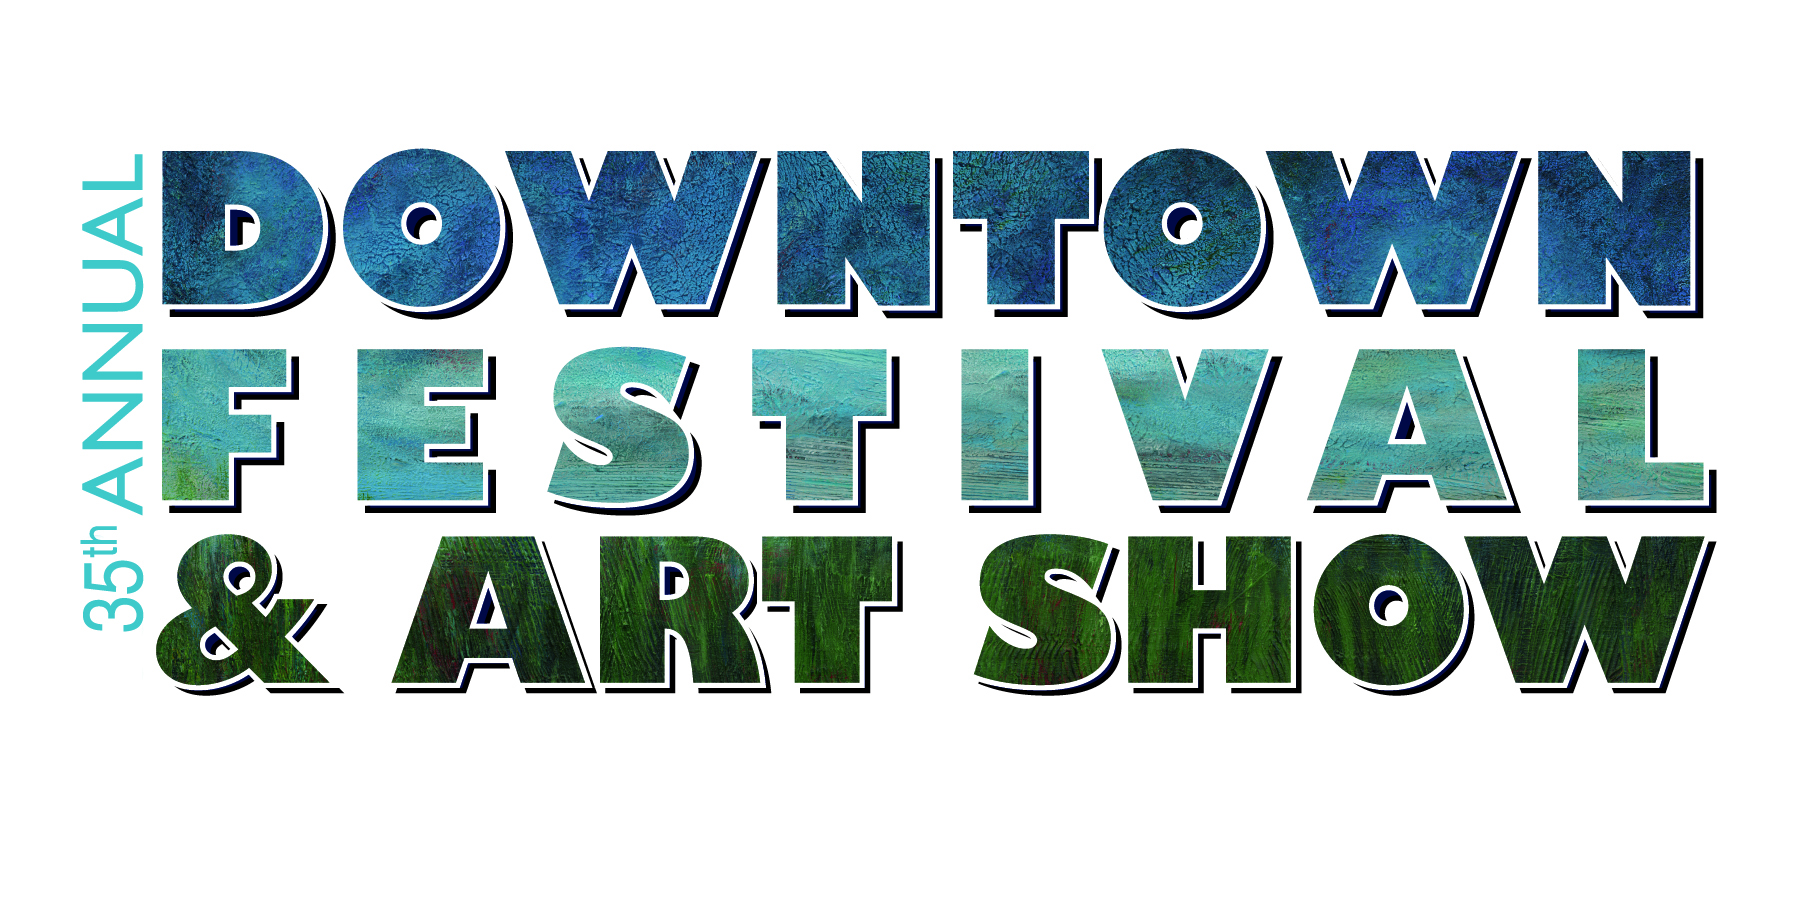 35th Annual Downtown Festival and Arts Show